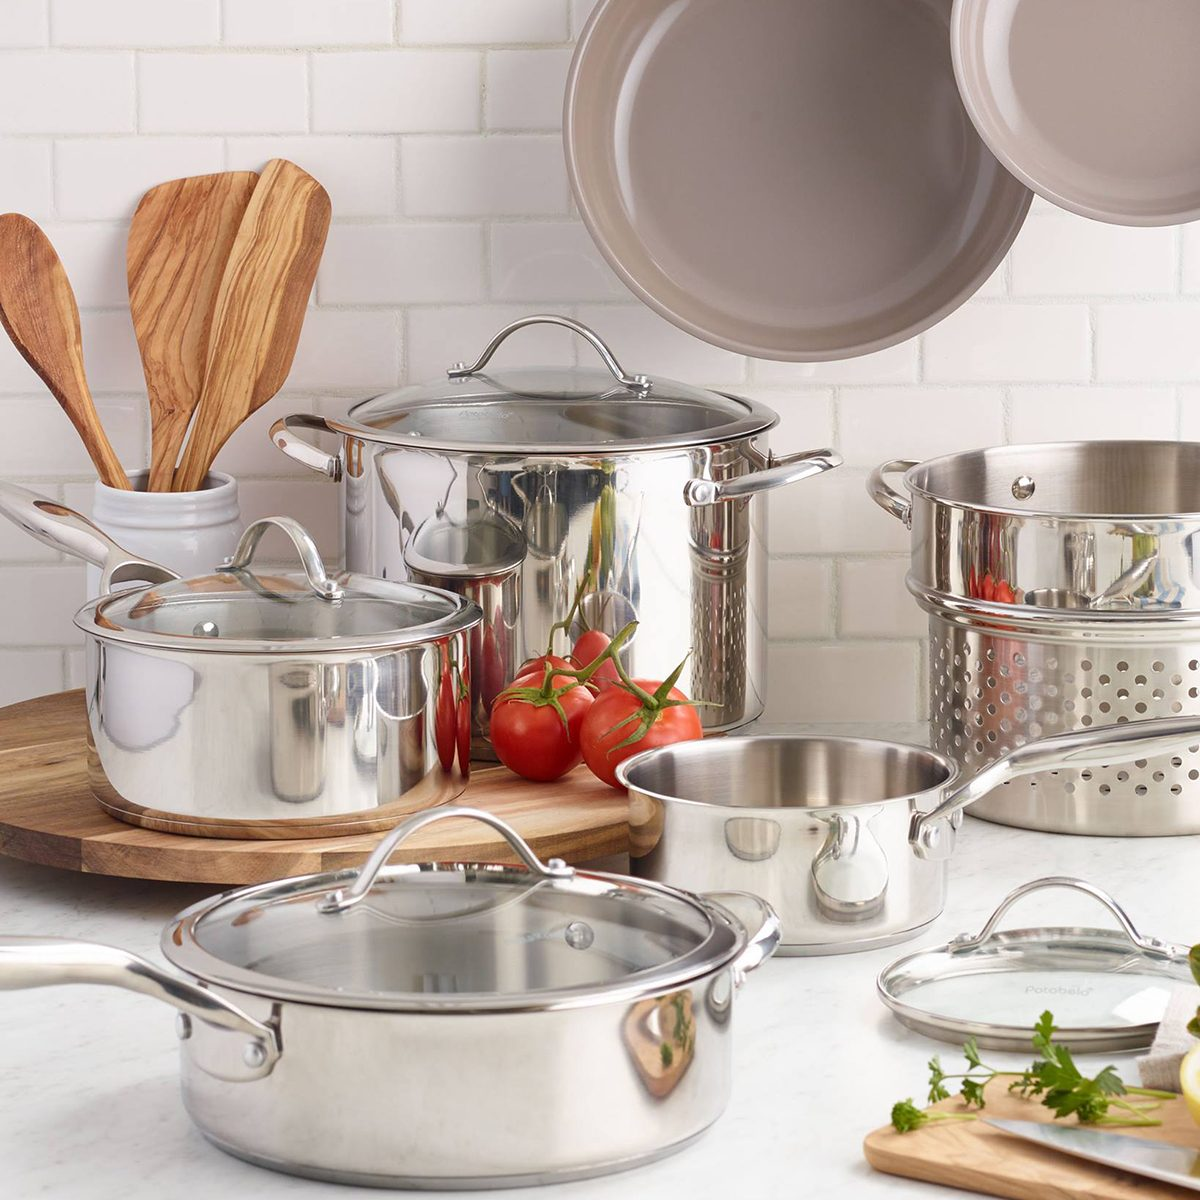 kitchen pots tablecloths the 10 best places to buy affordable gadgets online taste cost plus world market and pans